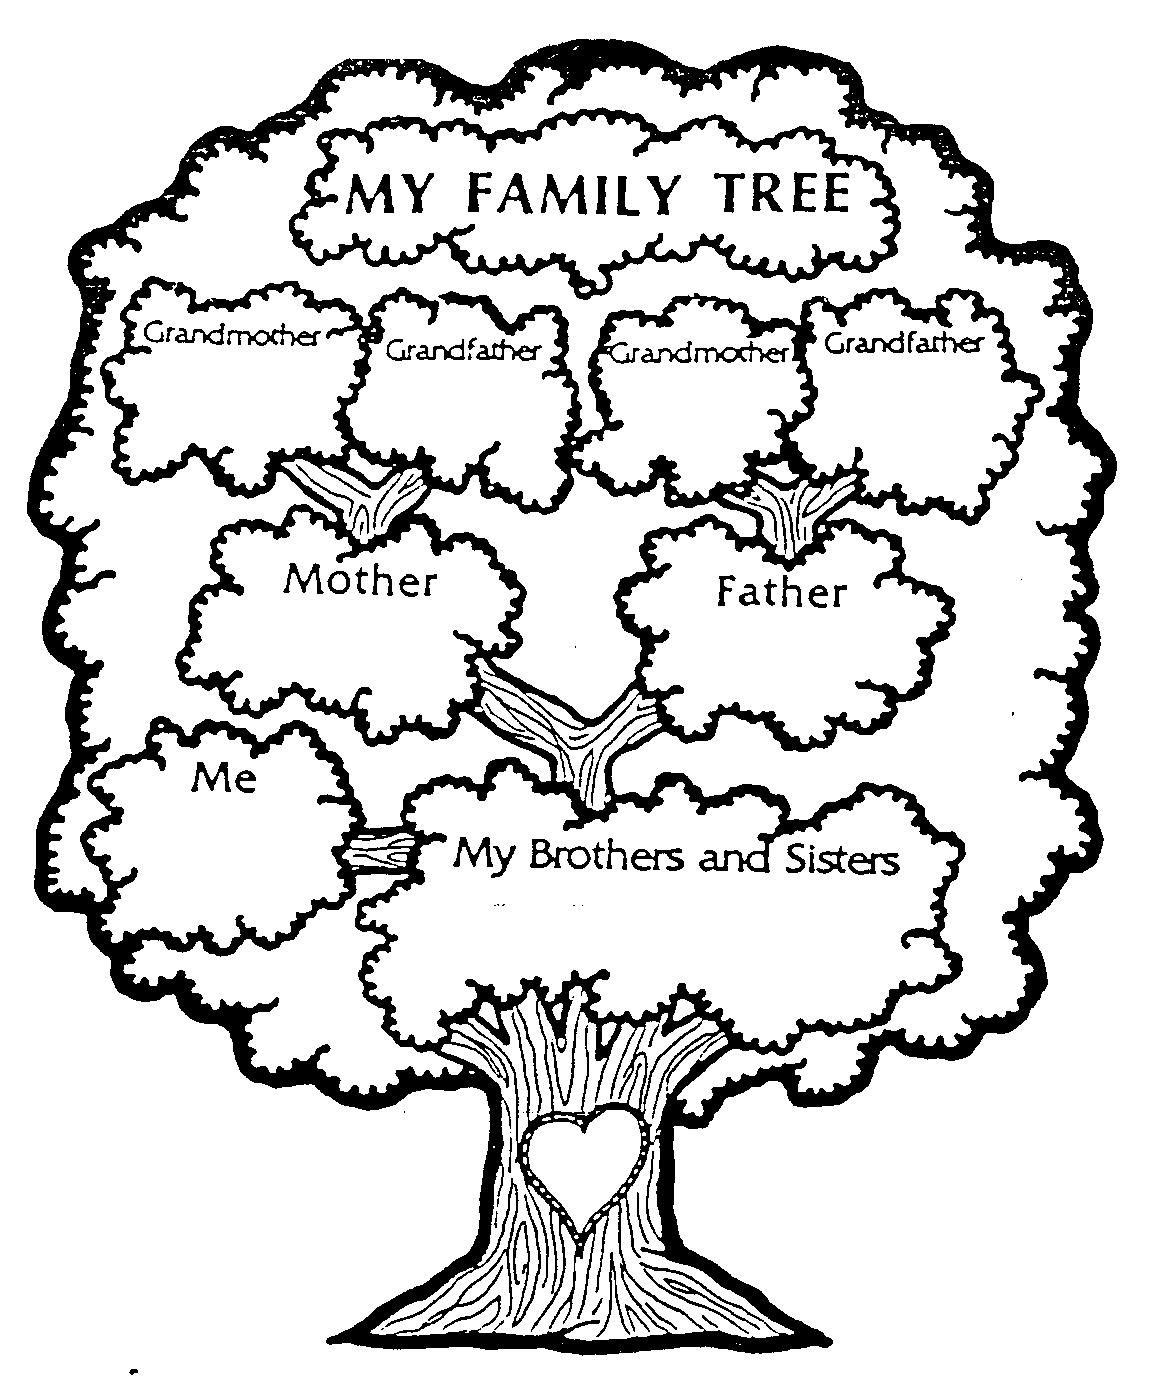 Worksheets Family Tree Worksheet For Kids pin by carly van dyke on activity days pinterest family trees free pictures of tree coloring pages all about for kids